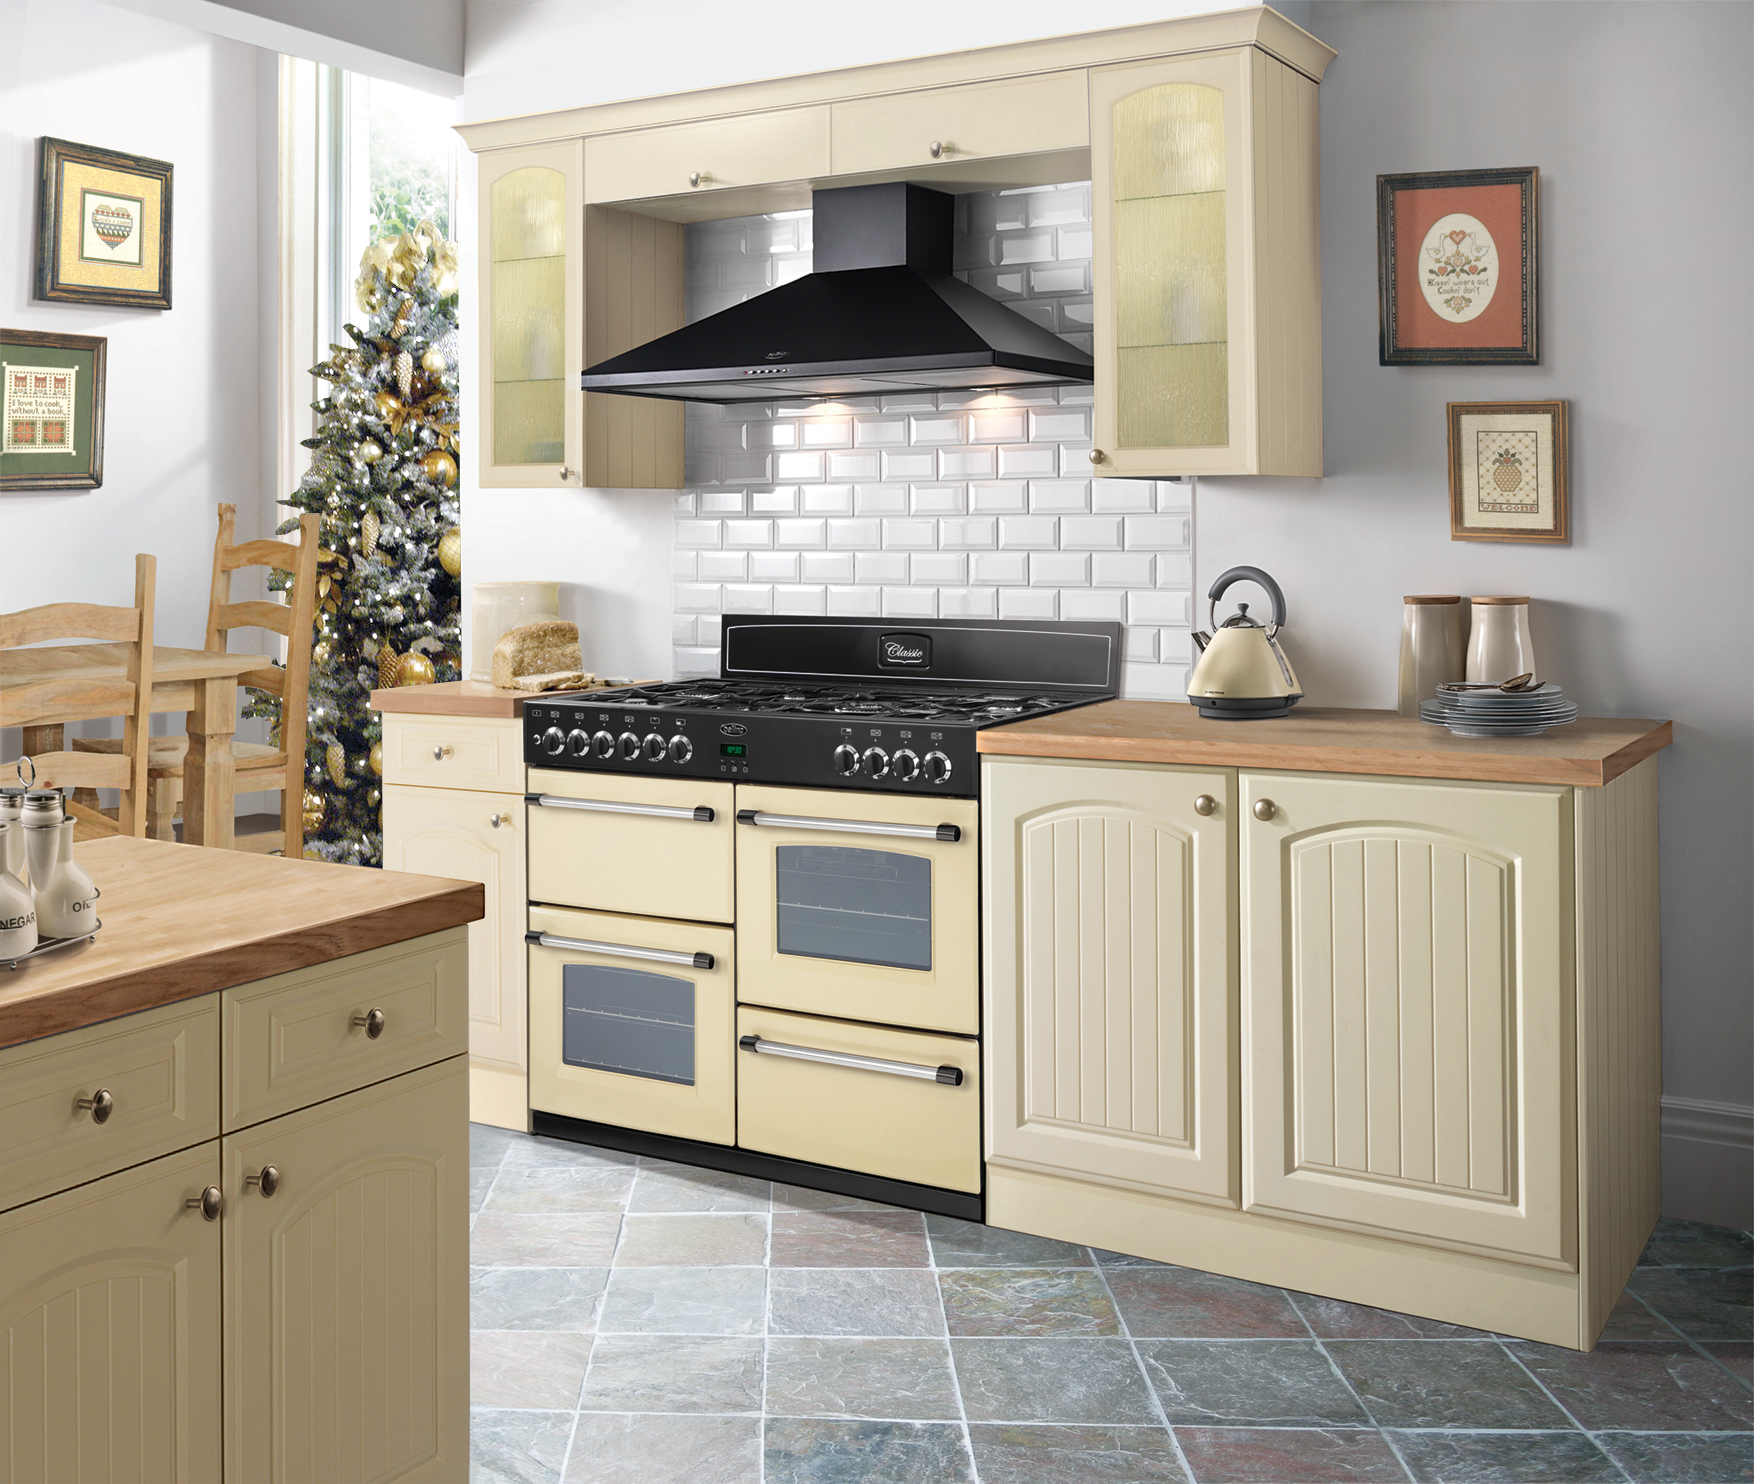 Belling Classic range cooker in an inspirational cream kitchen ...